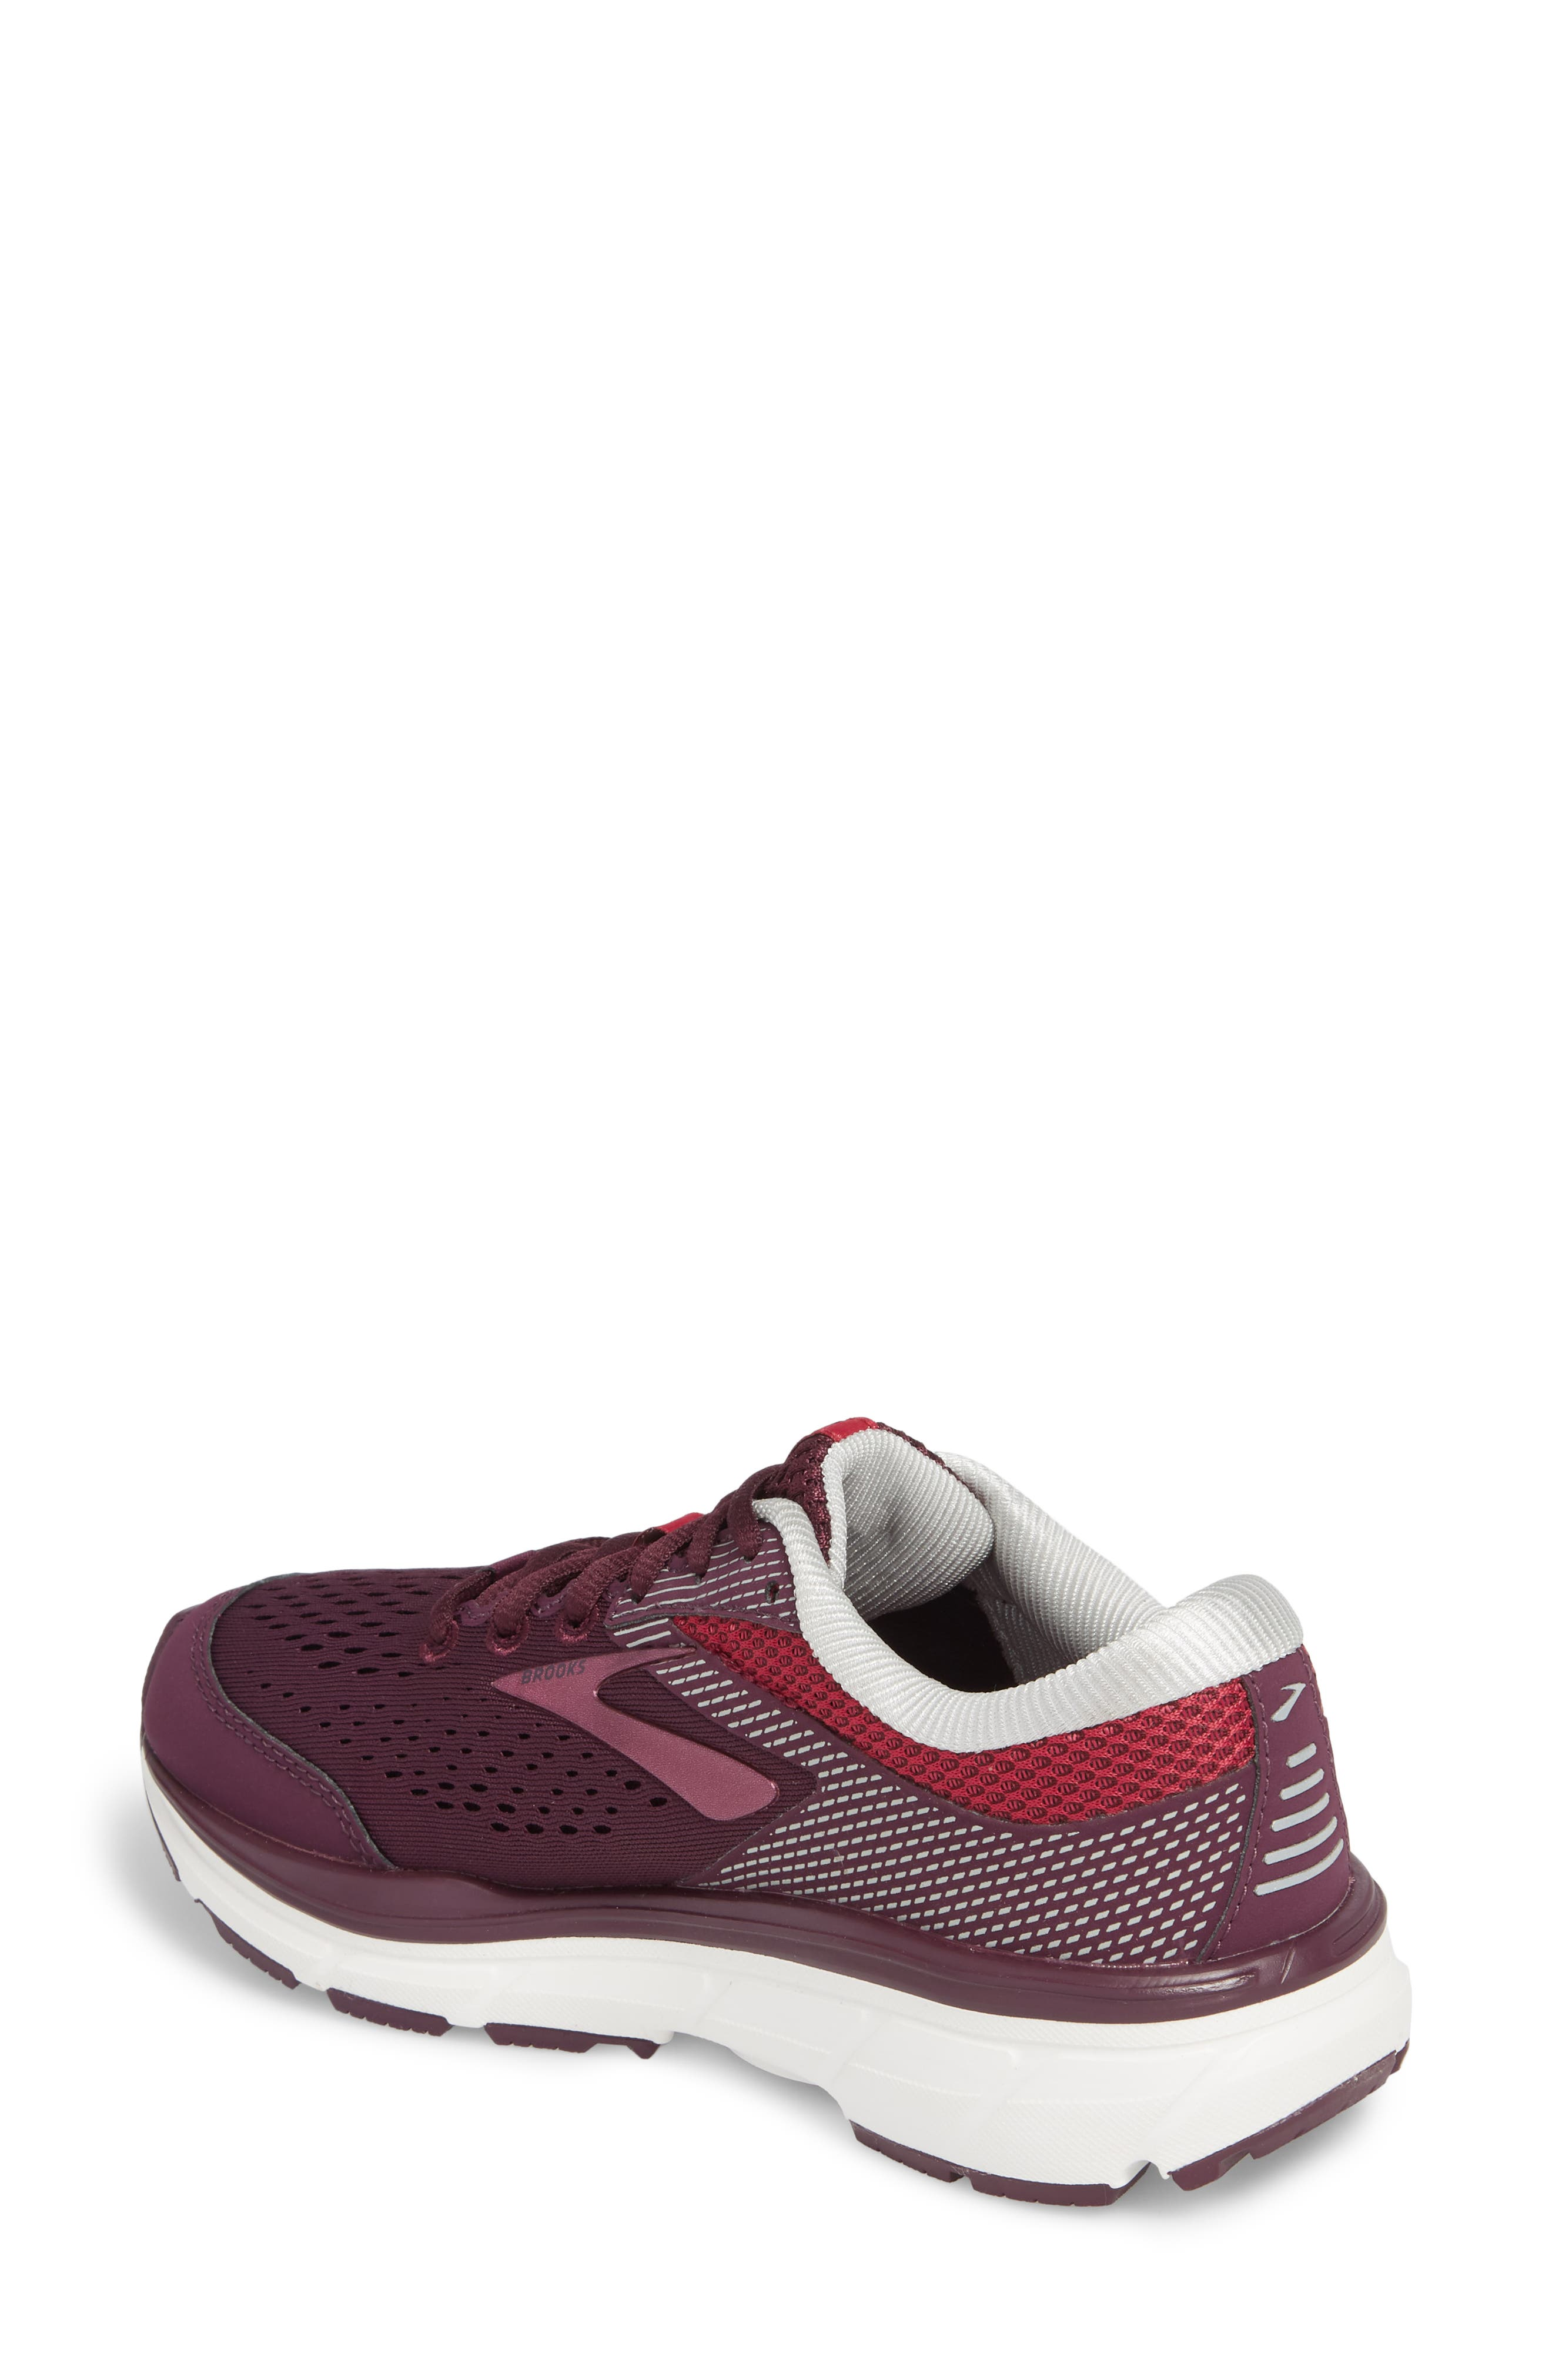 Dyad 10 Running Shoe,                             Alternate thumbnail 2, color,                             PURPLE/ PINK/ GREY